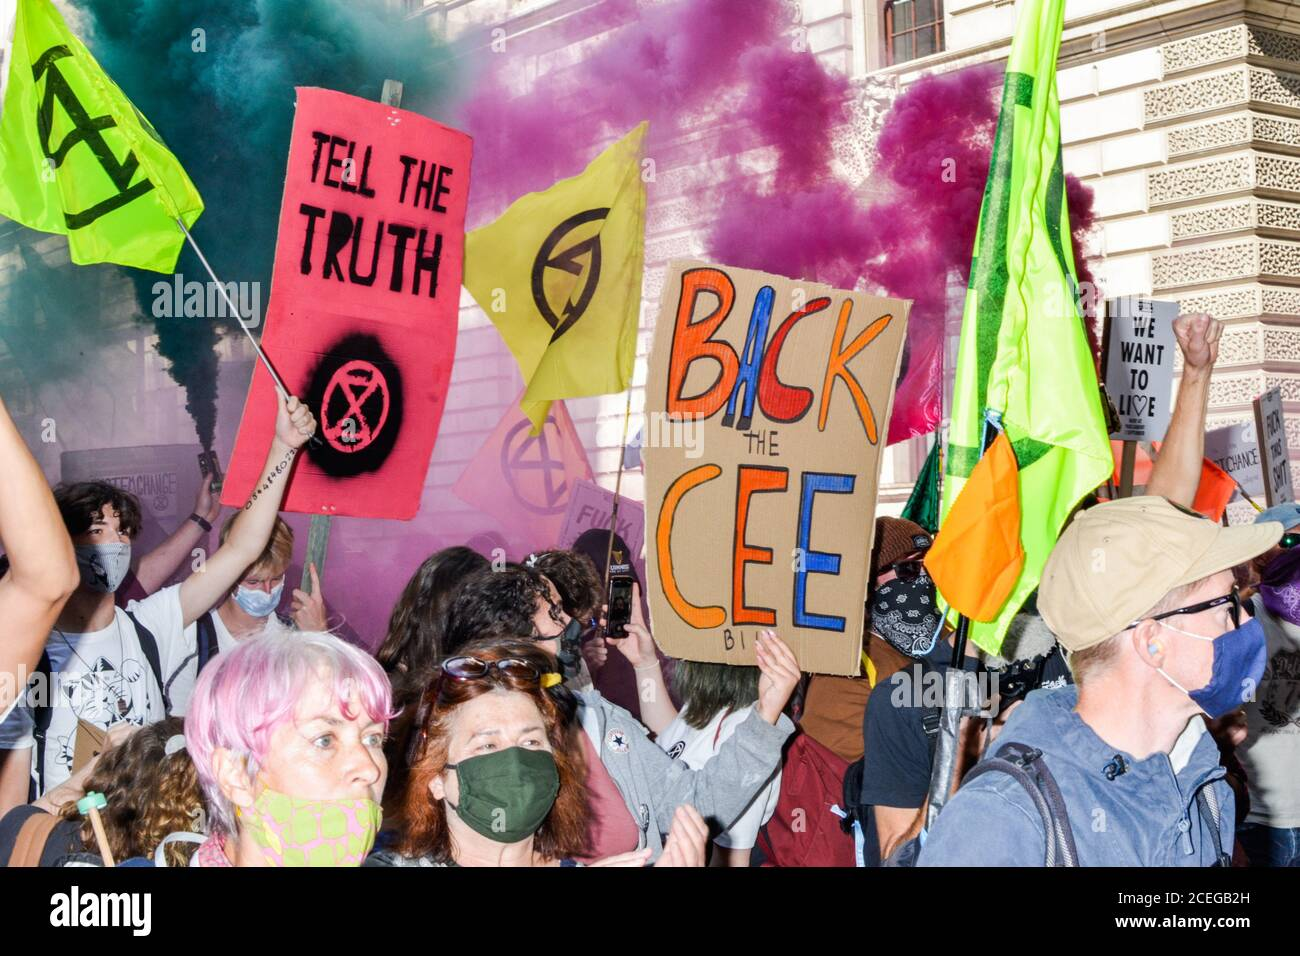 Thousands of Extinction Rebellion protesters converge upon Parliament Square in central London blocking roads in and out of the area demanding the government listen to their demand for a citizen's assembly to tackle climate change. Stock Photo